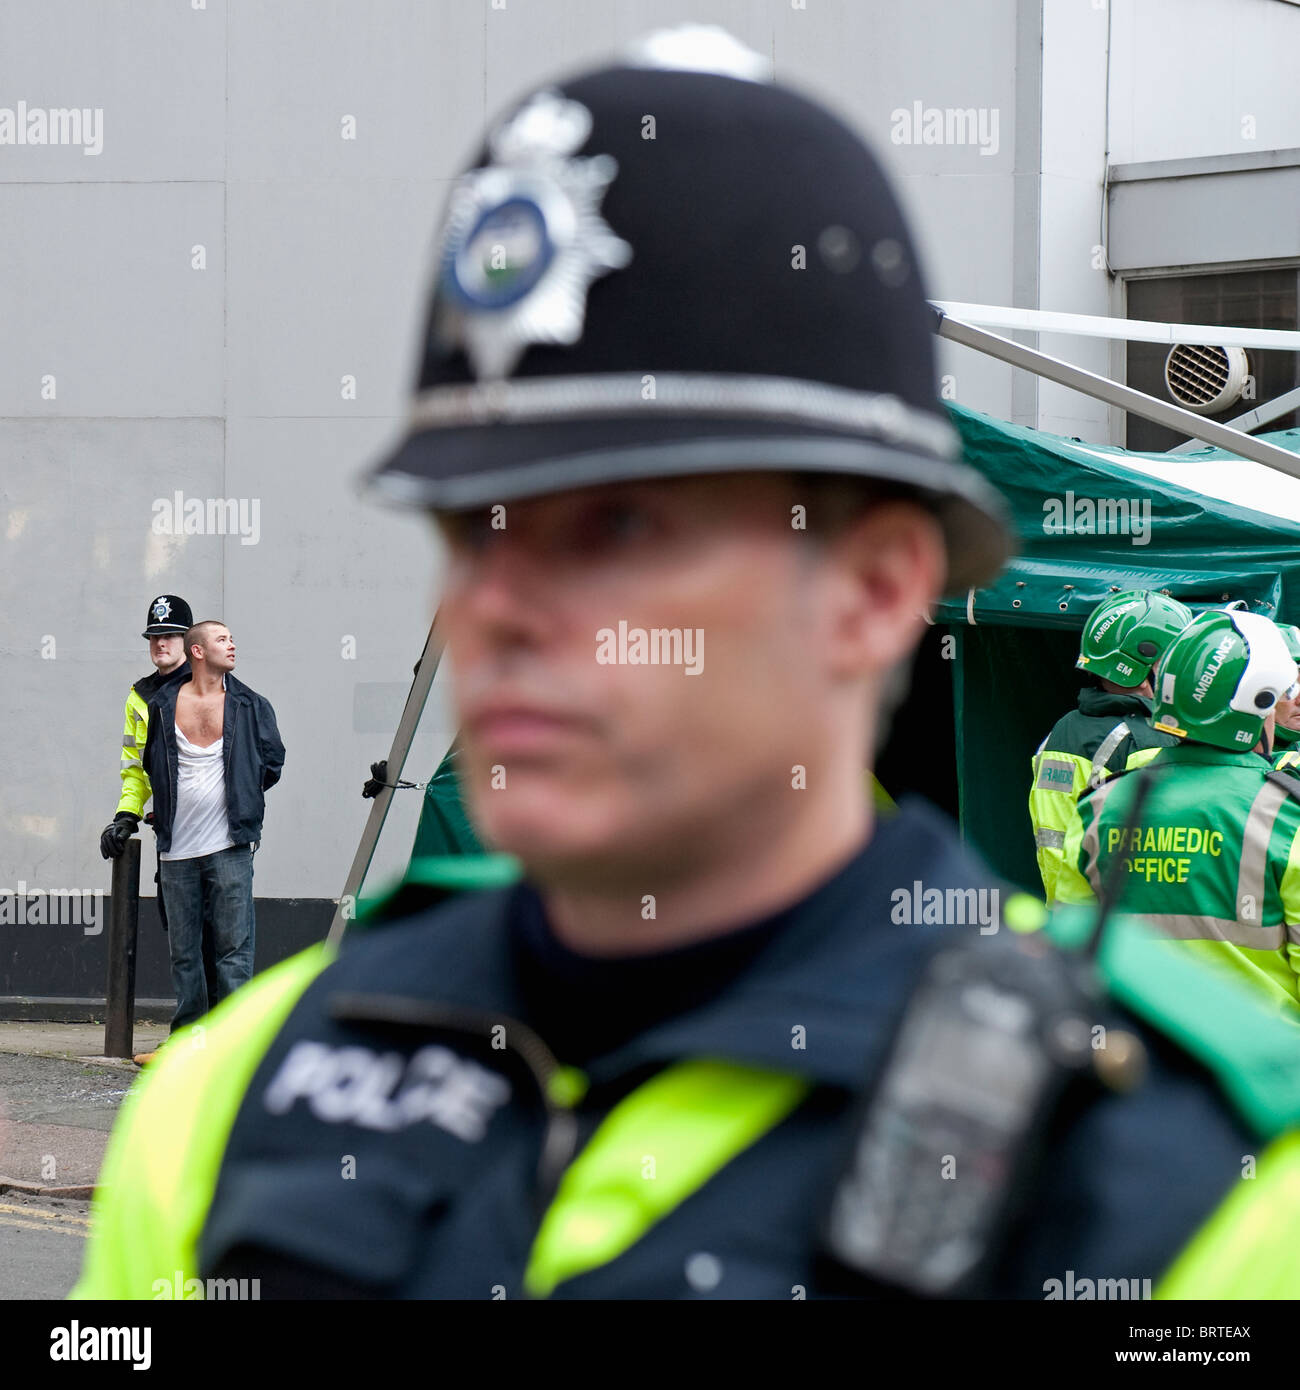 Police presence as The English Defence League demonstrate in Leicester. 9th October 2010. Stock Photo